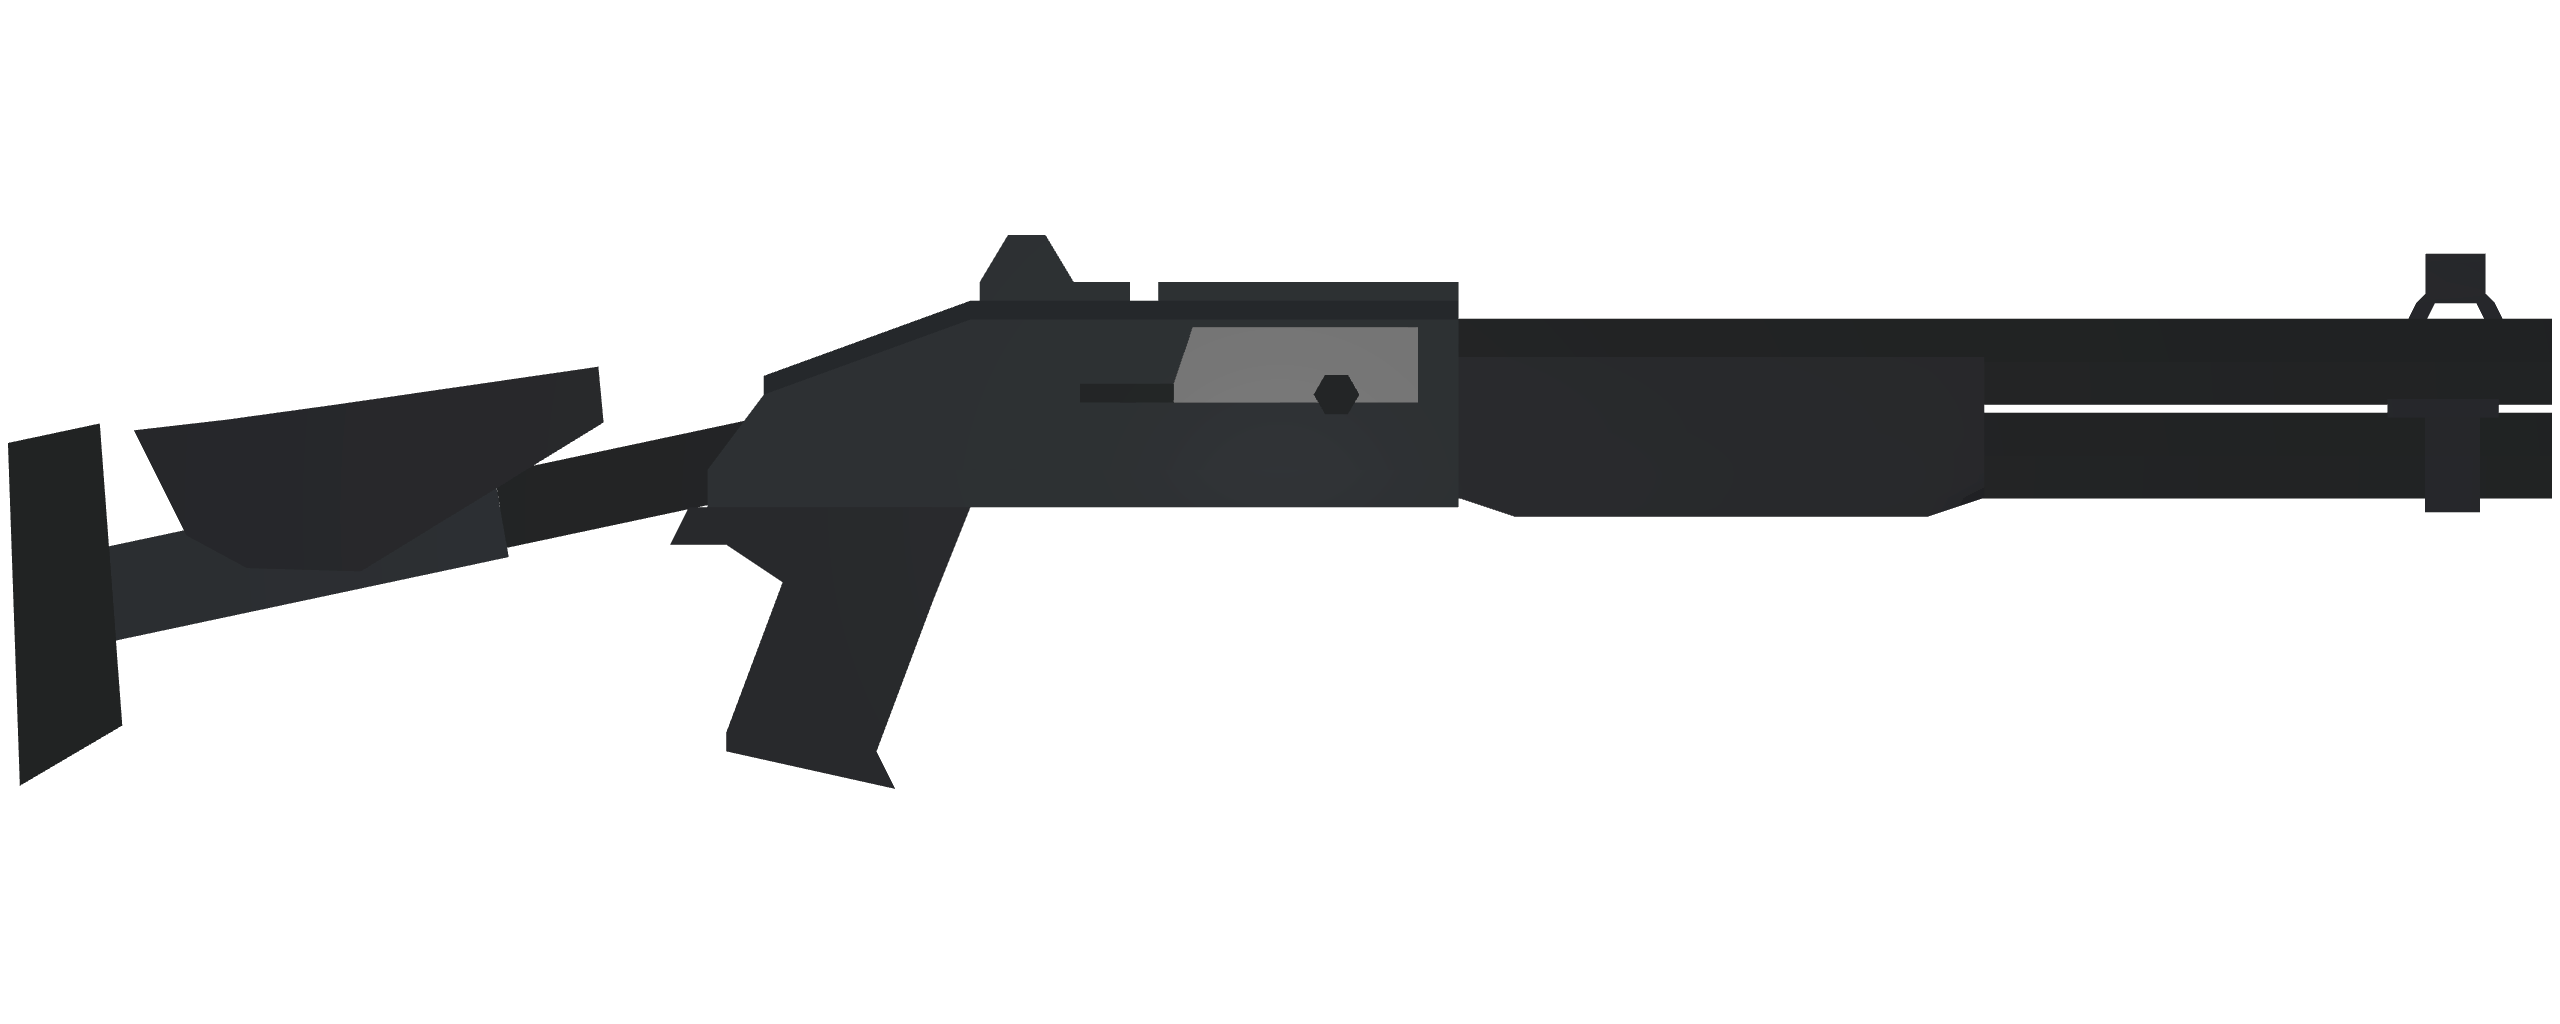 Unturned Uncreated Warfare Mods & All ID List + Attachments - USA Weapons - CC29709